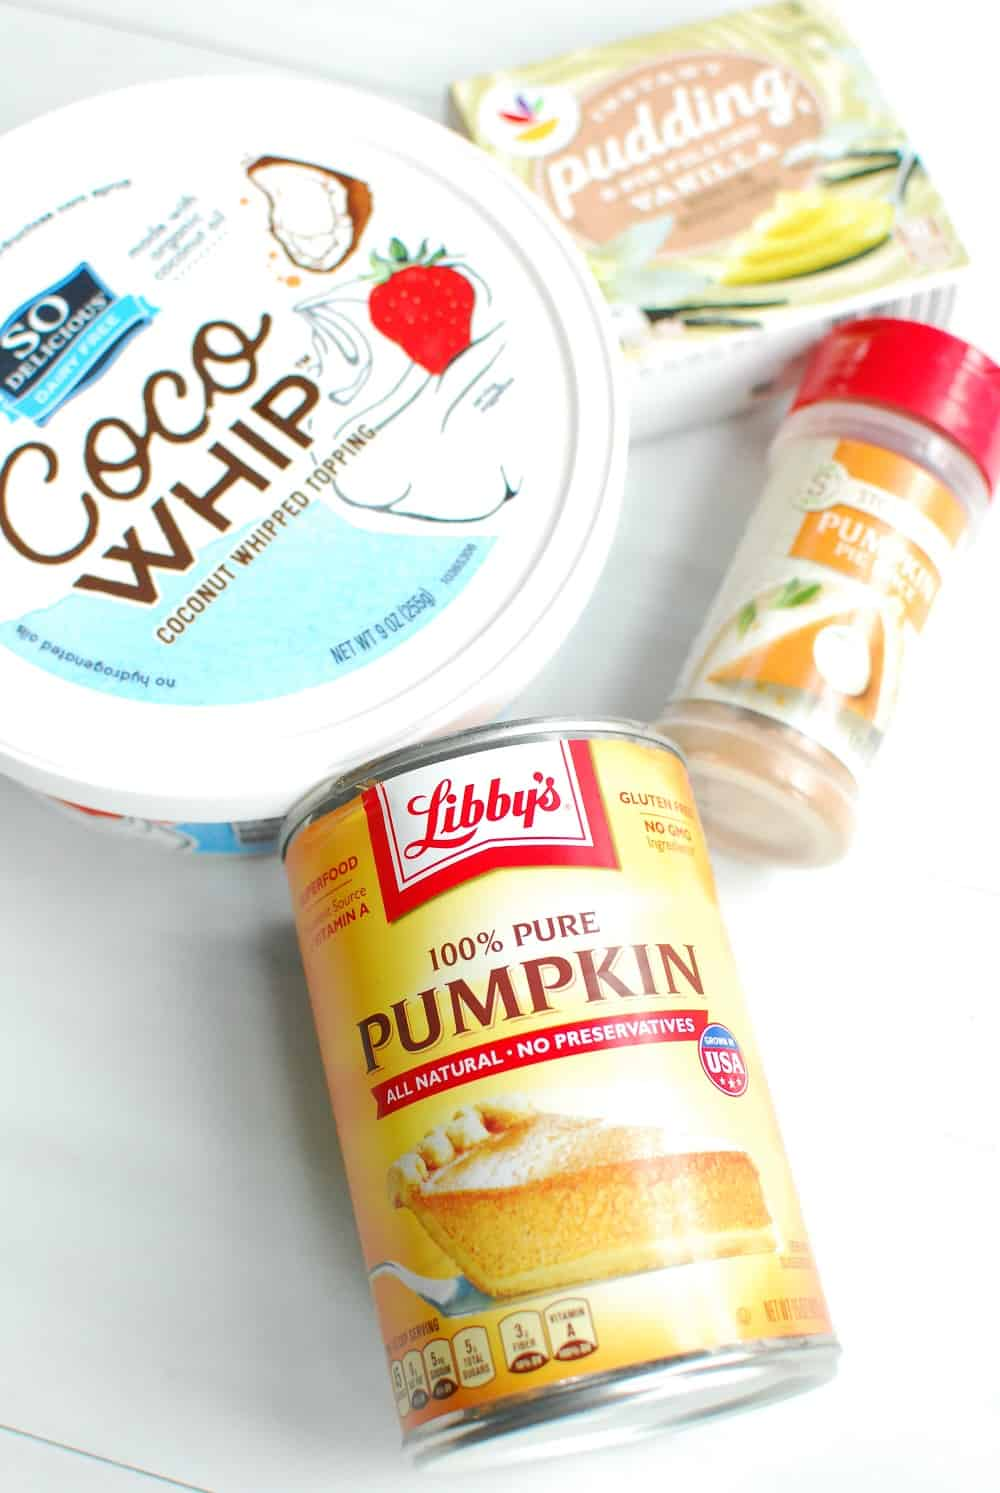 a can of pumpkin, a container of cocowhip, pumpkin spic, and vanilla pudding mx